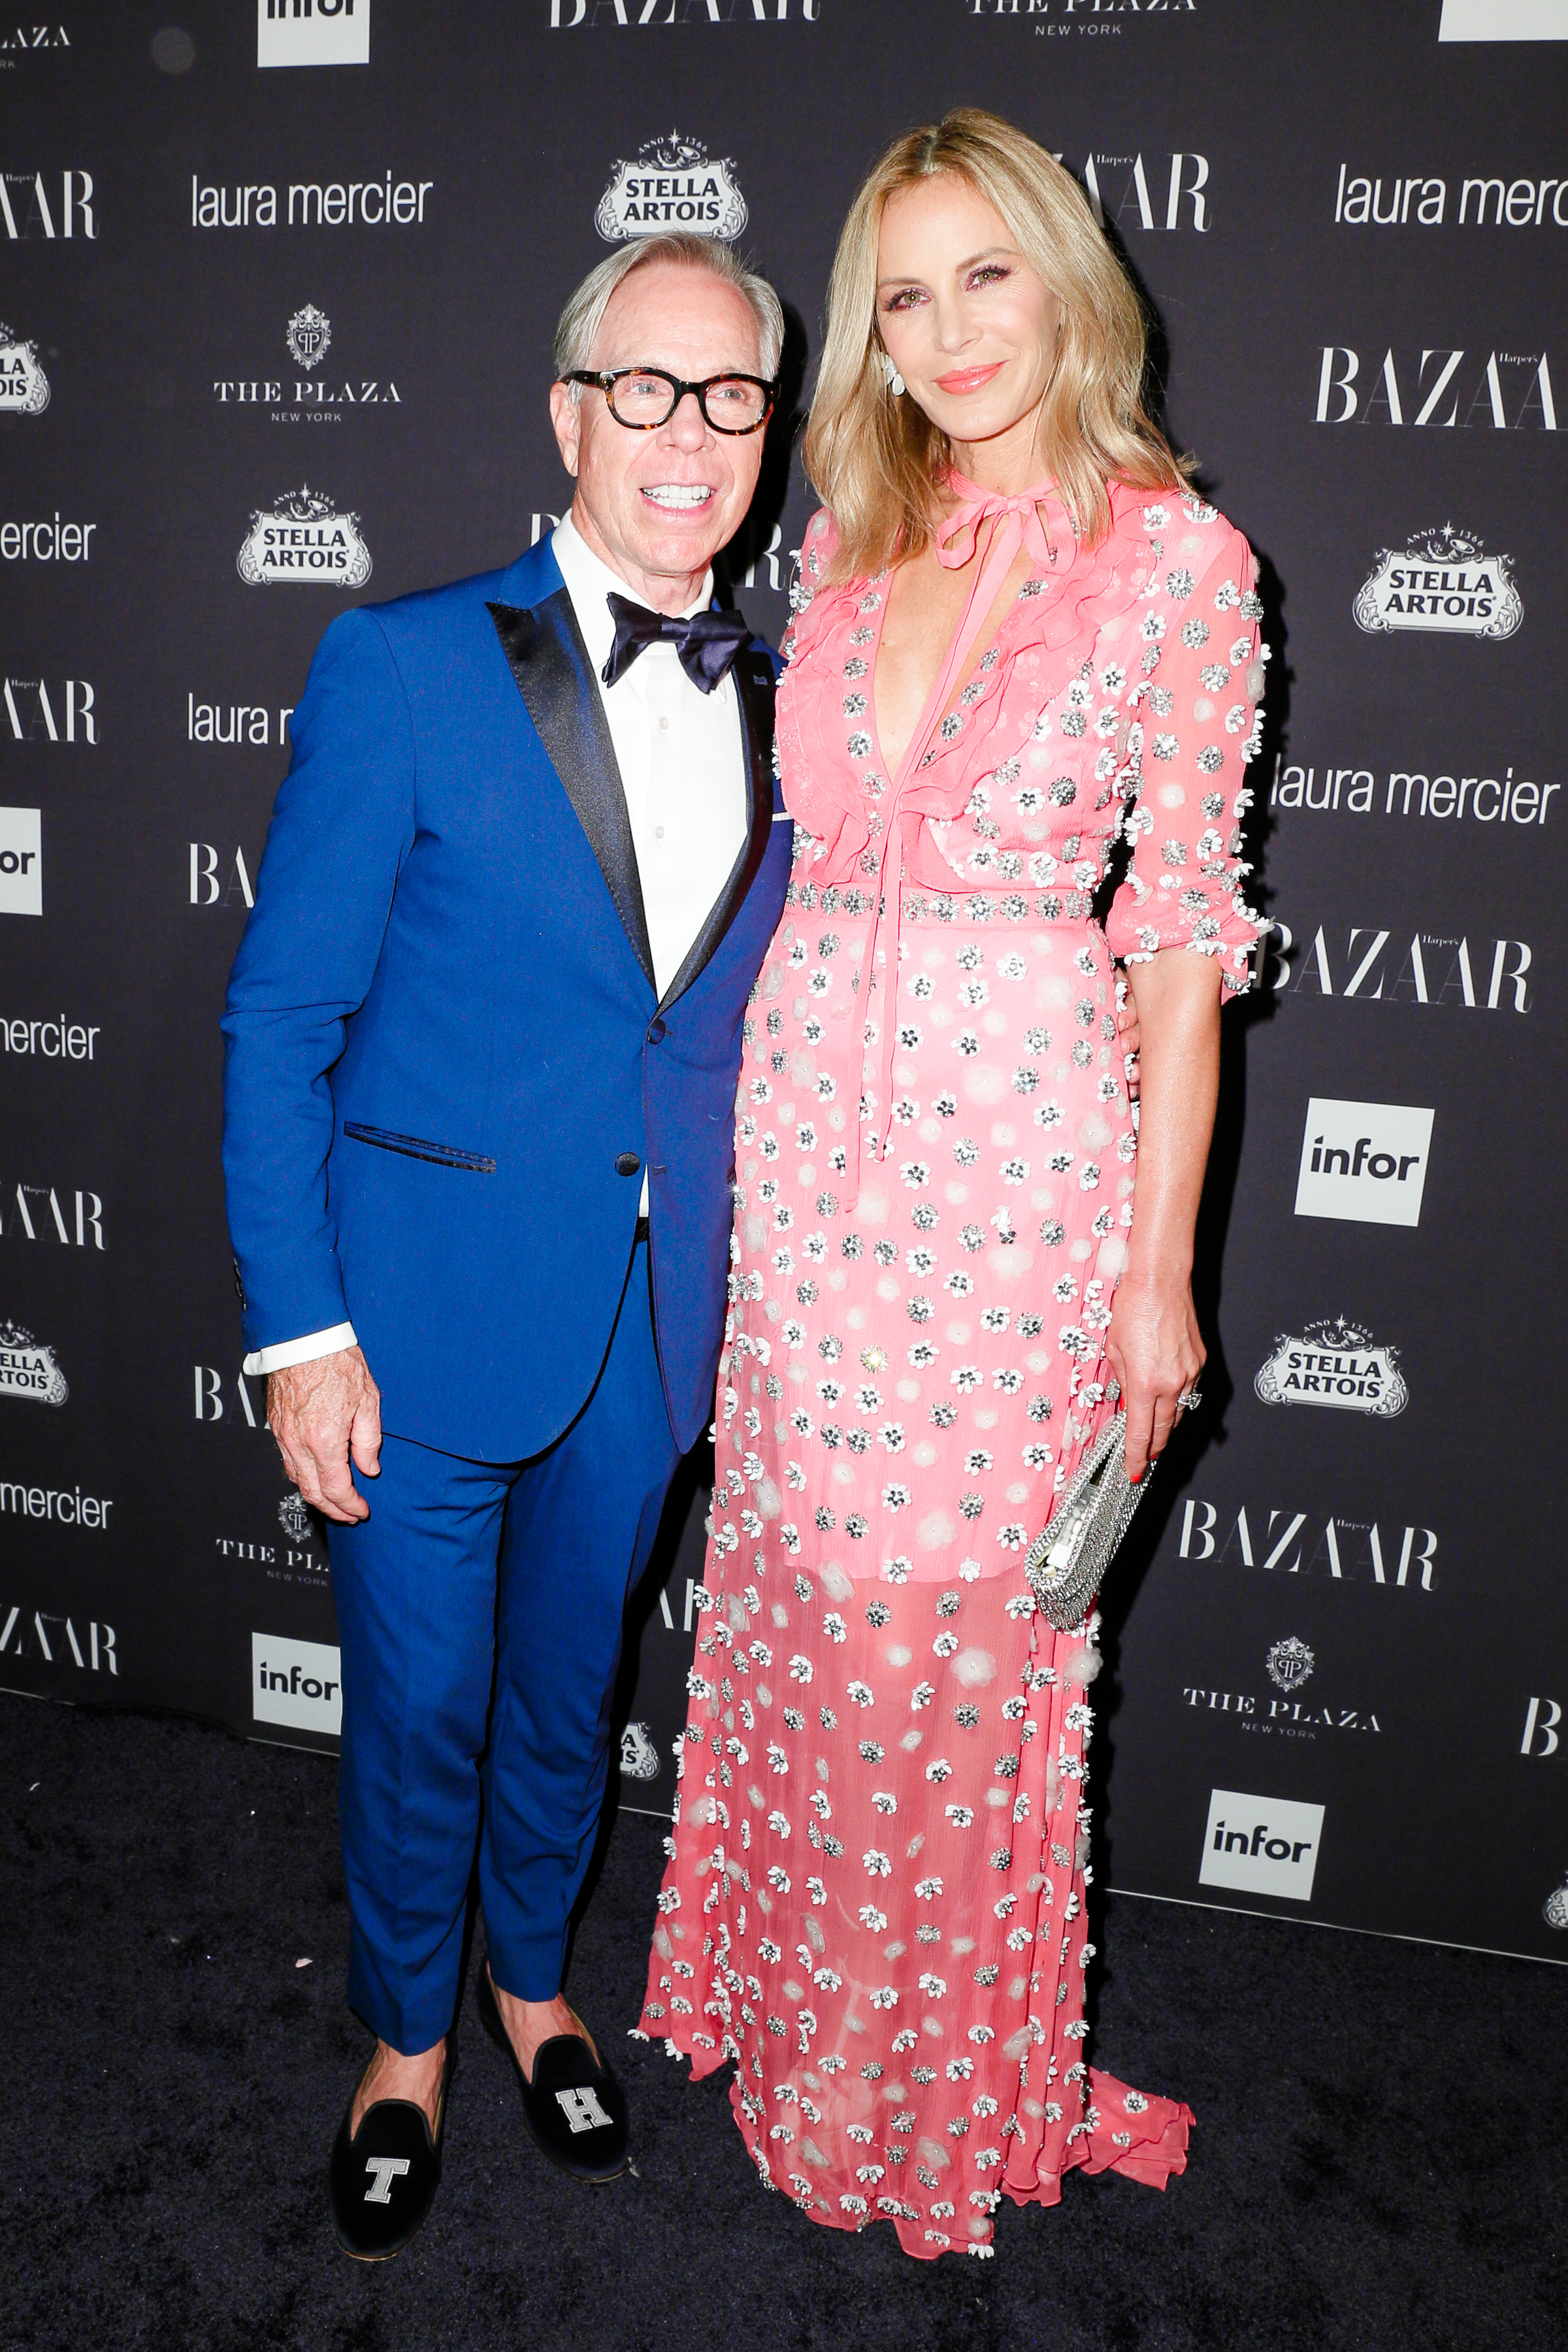 Tommy Hilfiger and Dee Ocleppo arrive at Harper's BAZAAR's celebration of 'ICONS by Carine Roitfeld' at The Plaza Hotel presented by Infor, Laura Mercier and Stella Artois_BFA.jpg